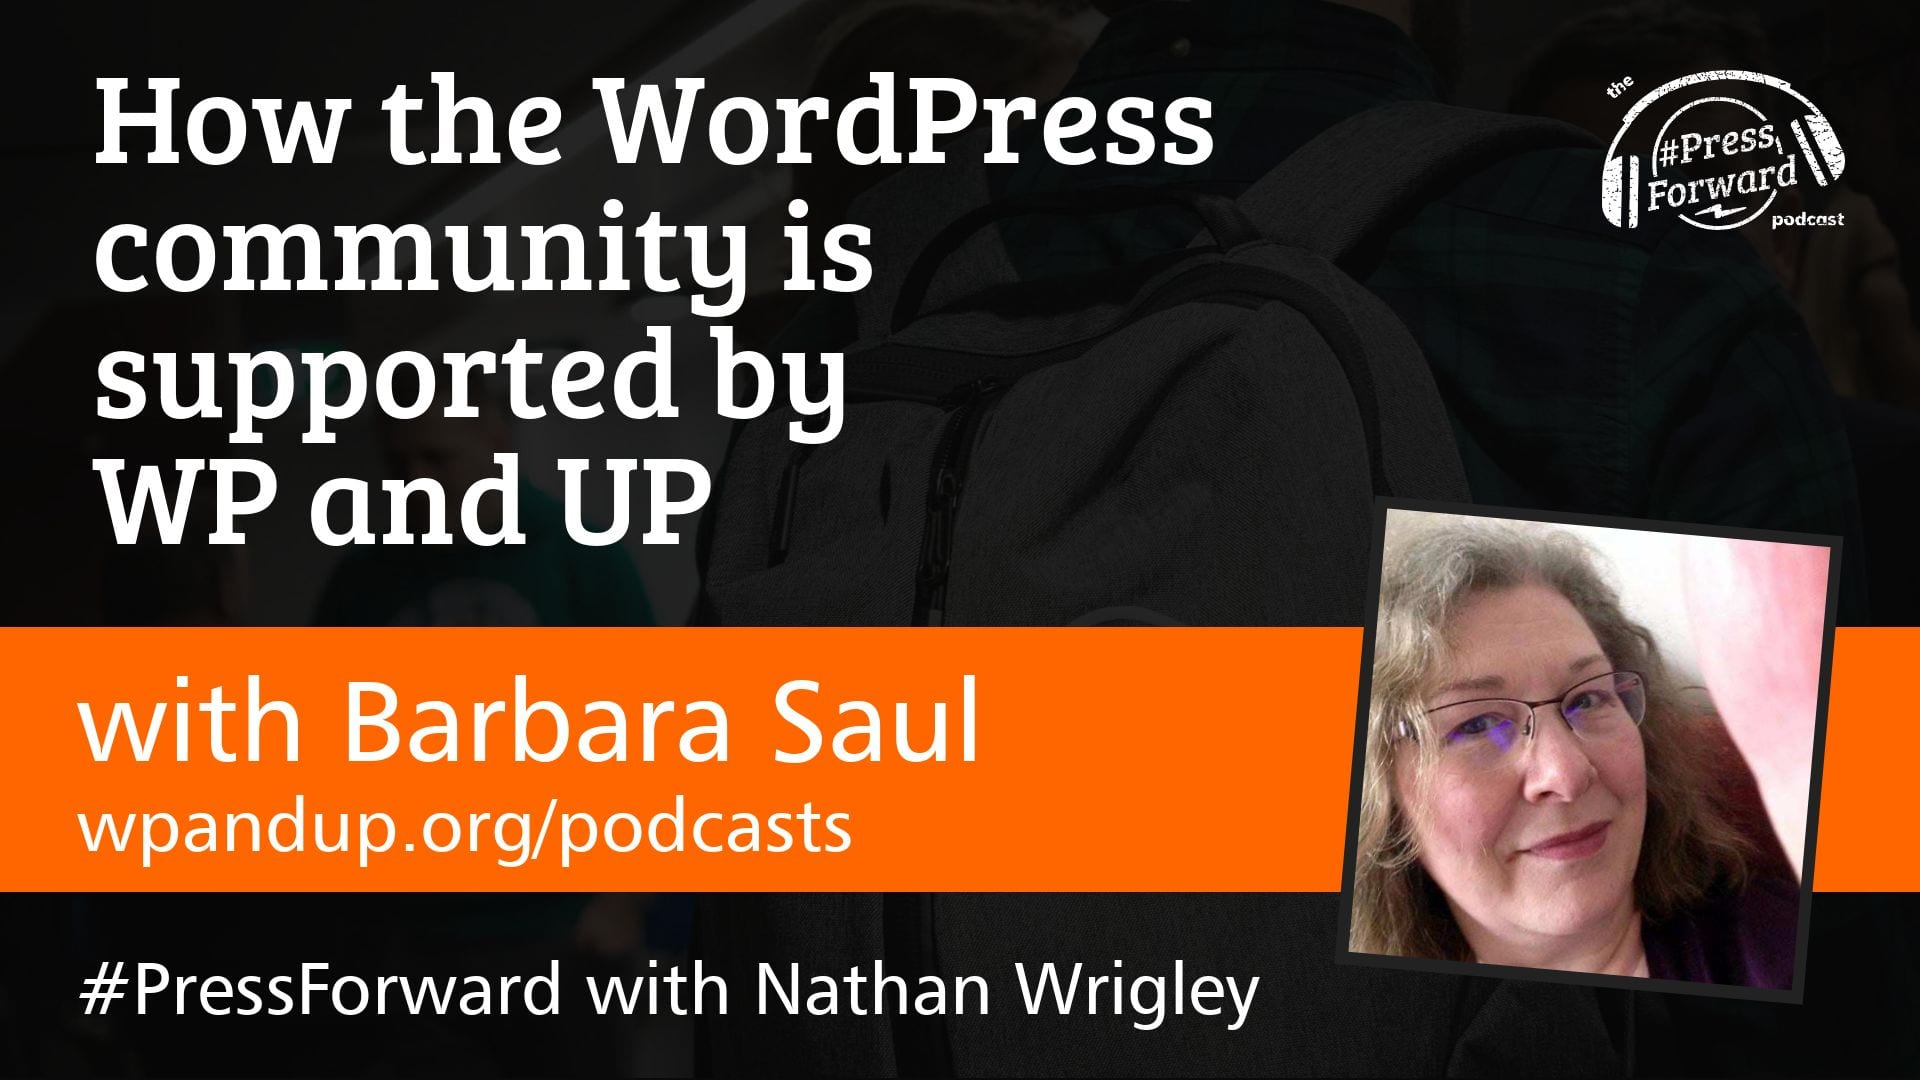 How the WordPress community is supported by WP and UP - #028